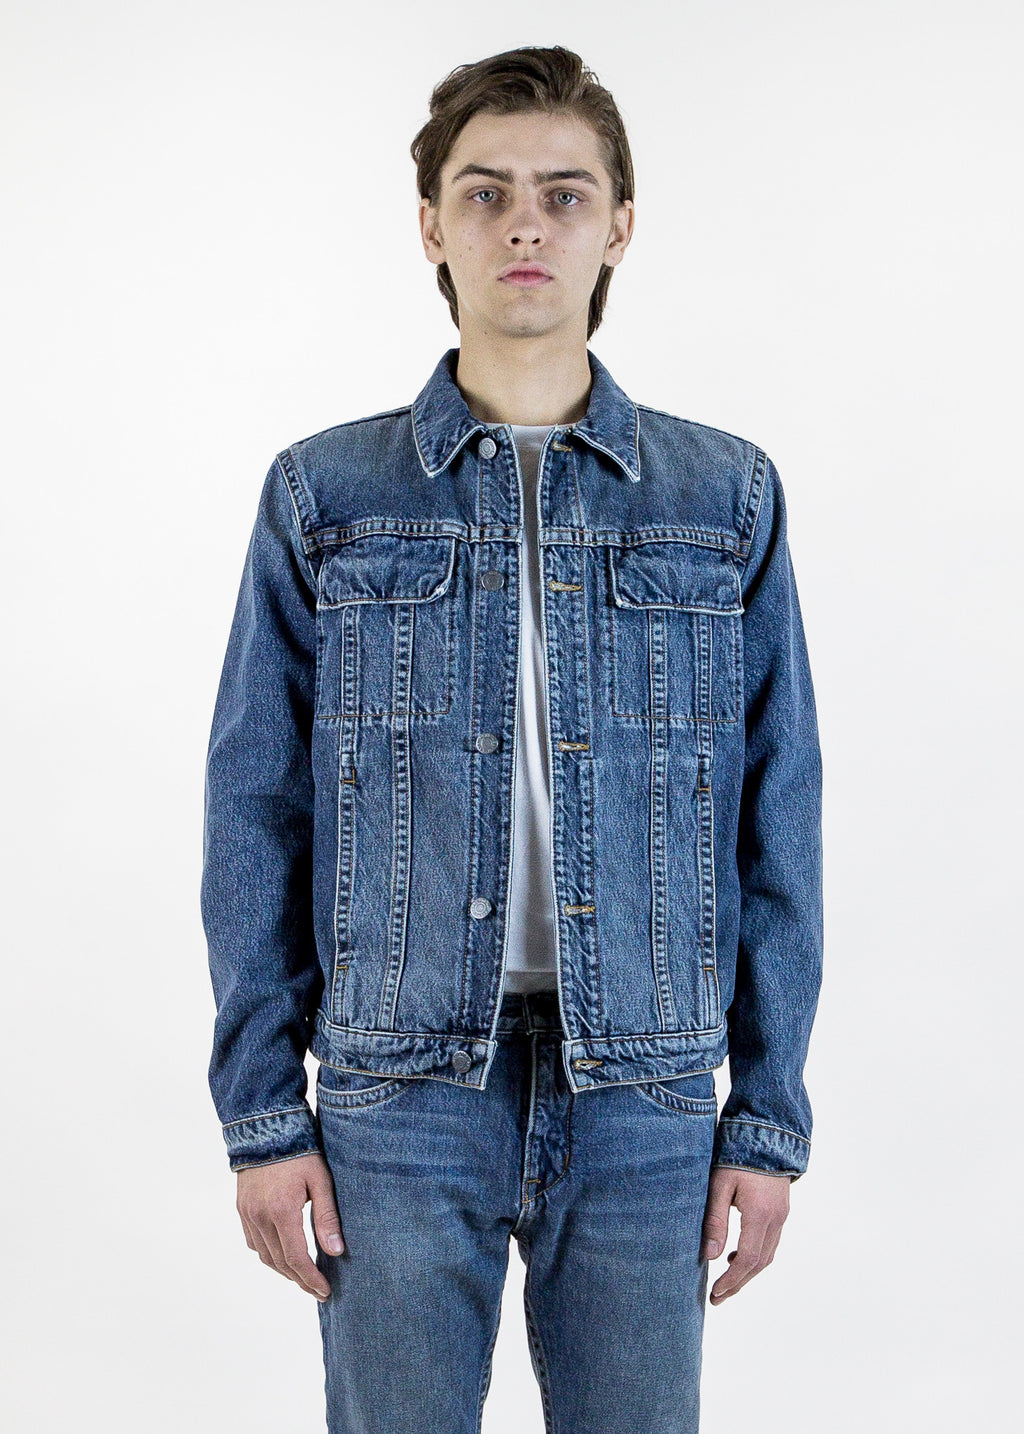 Mr 87 Heritage Indigo Jean Jacket